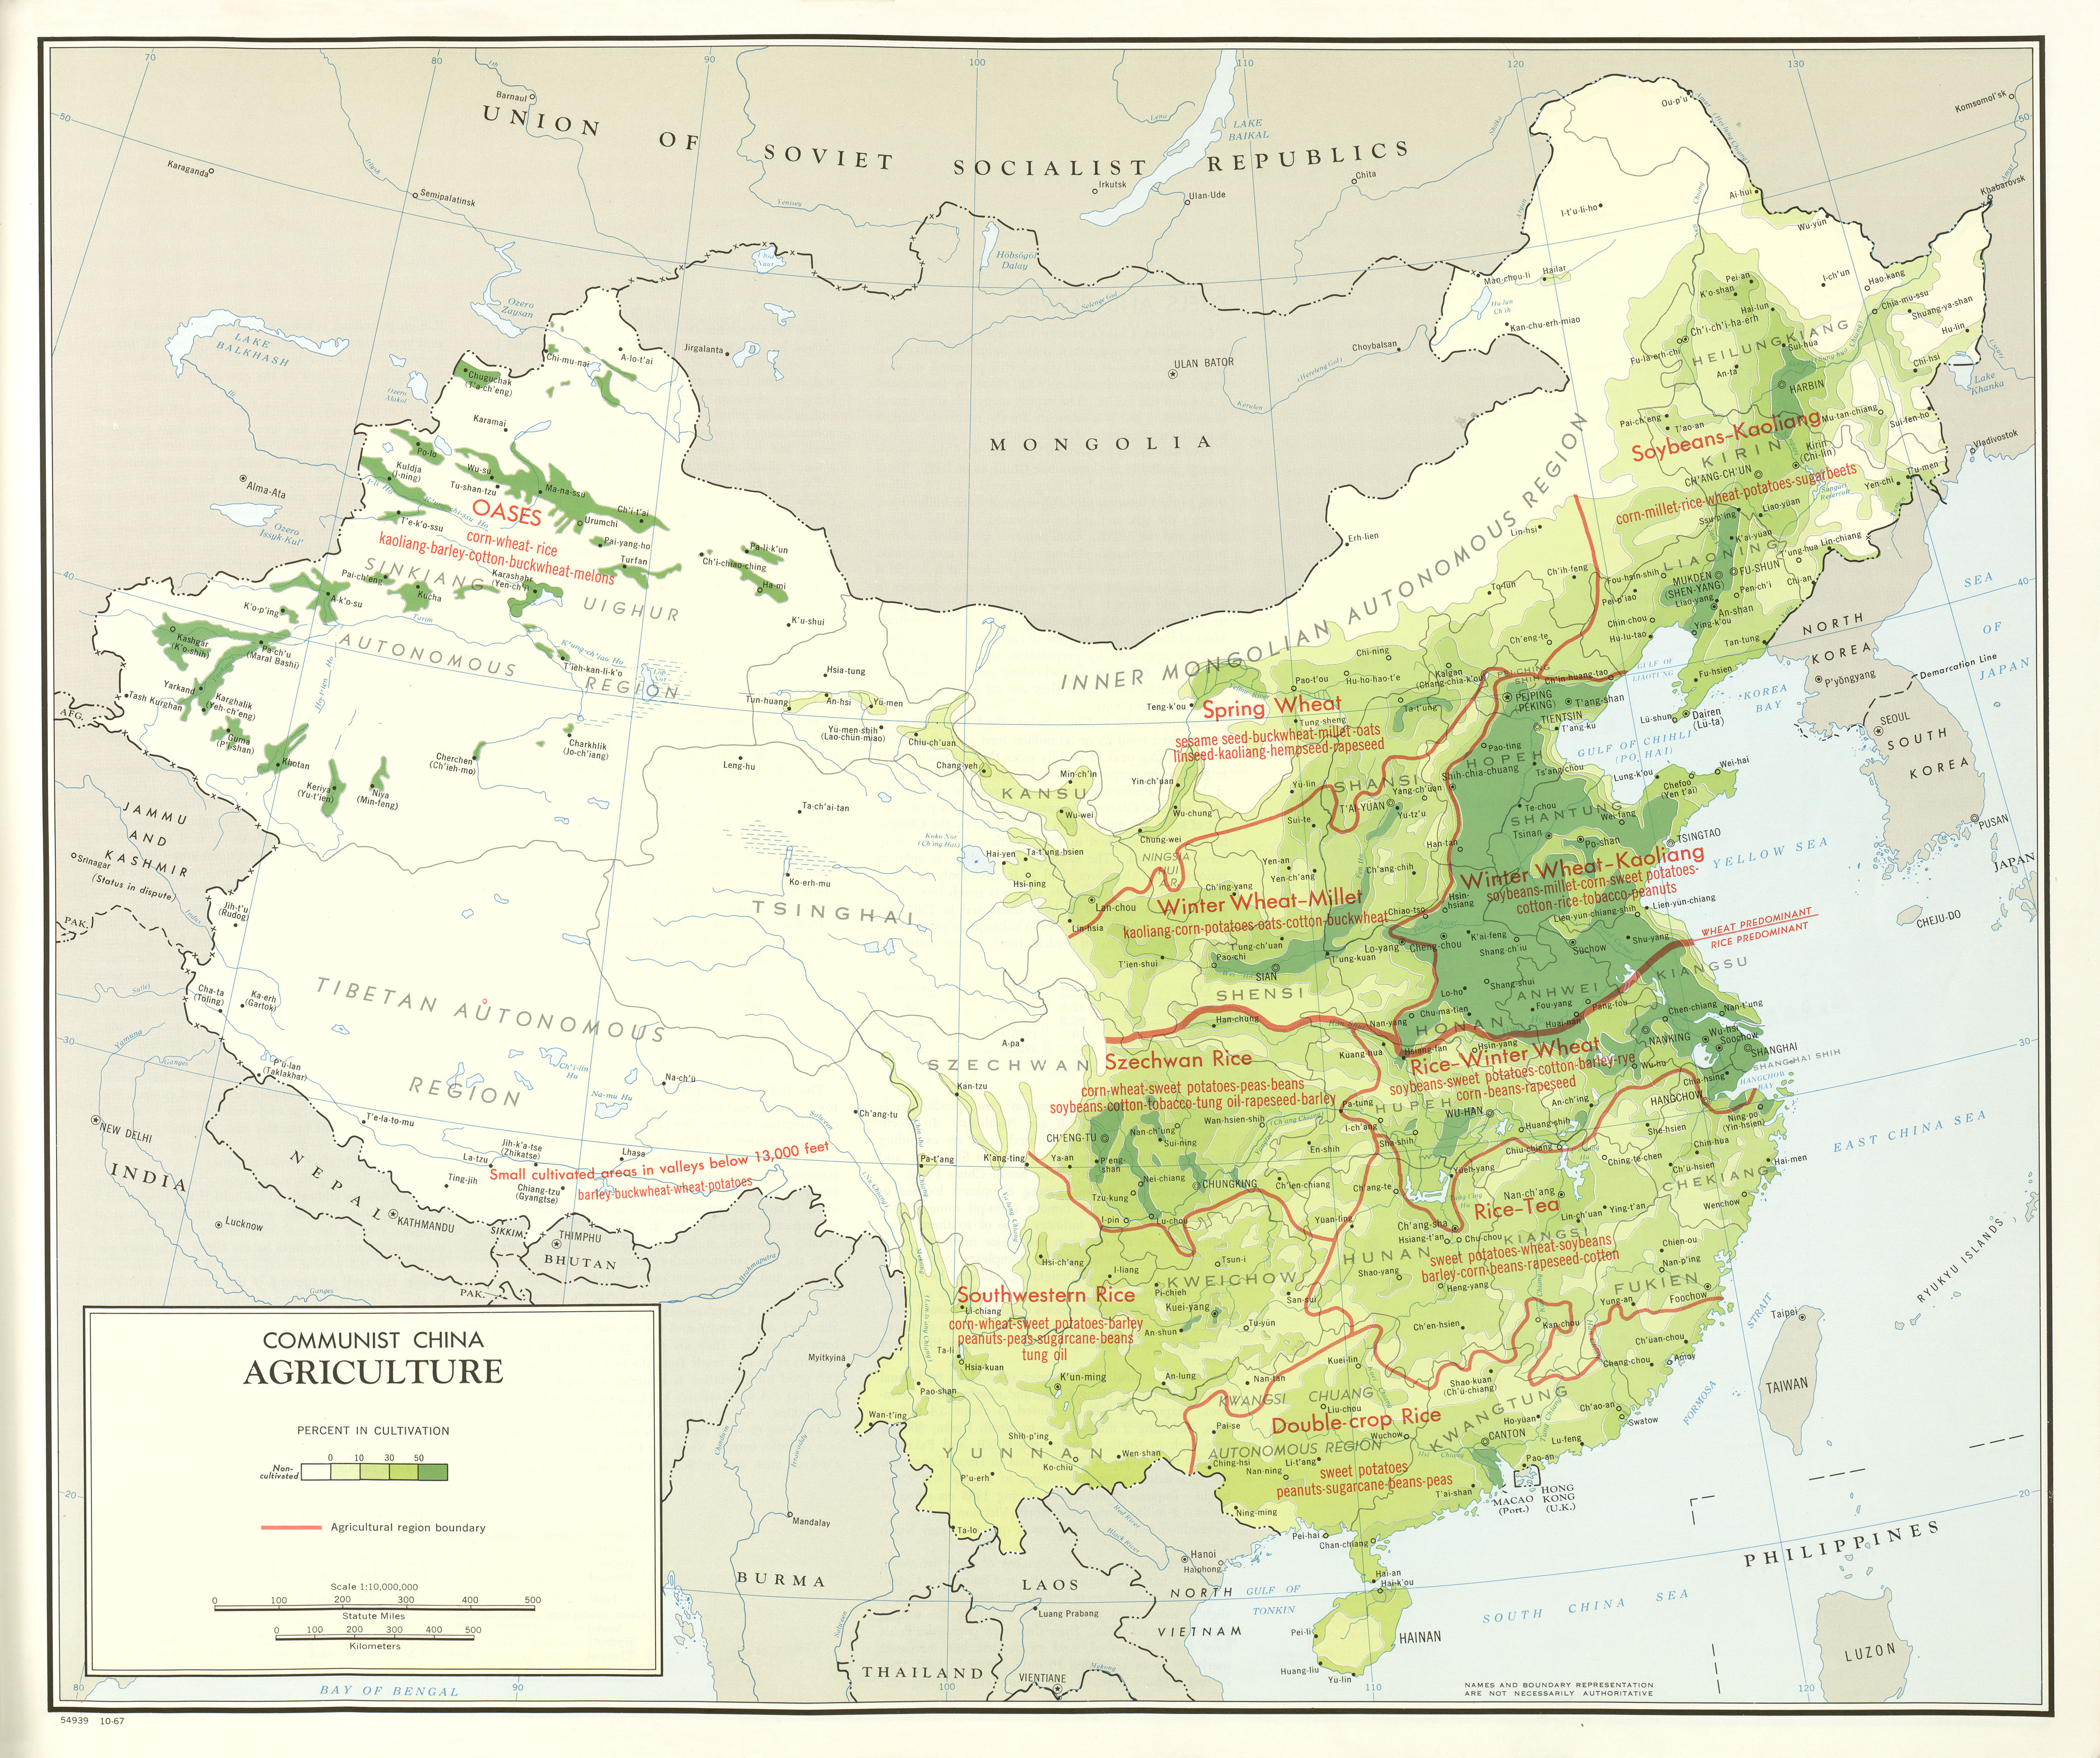 a description of the korea dominated by the chinese empire For years, both republican and democratic administrations argued that the gravitational pull of us-dominated international institutions, trade flows, even pop culture, would gradually reshape the people's republic, resulting in a moderate new china with which the united states and its asian allies could comfortably coexist.